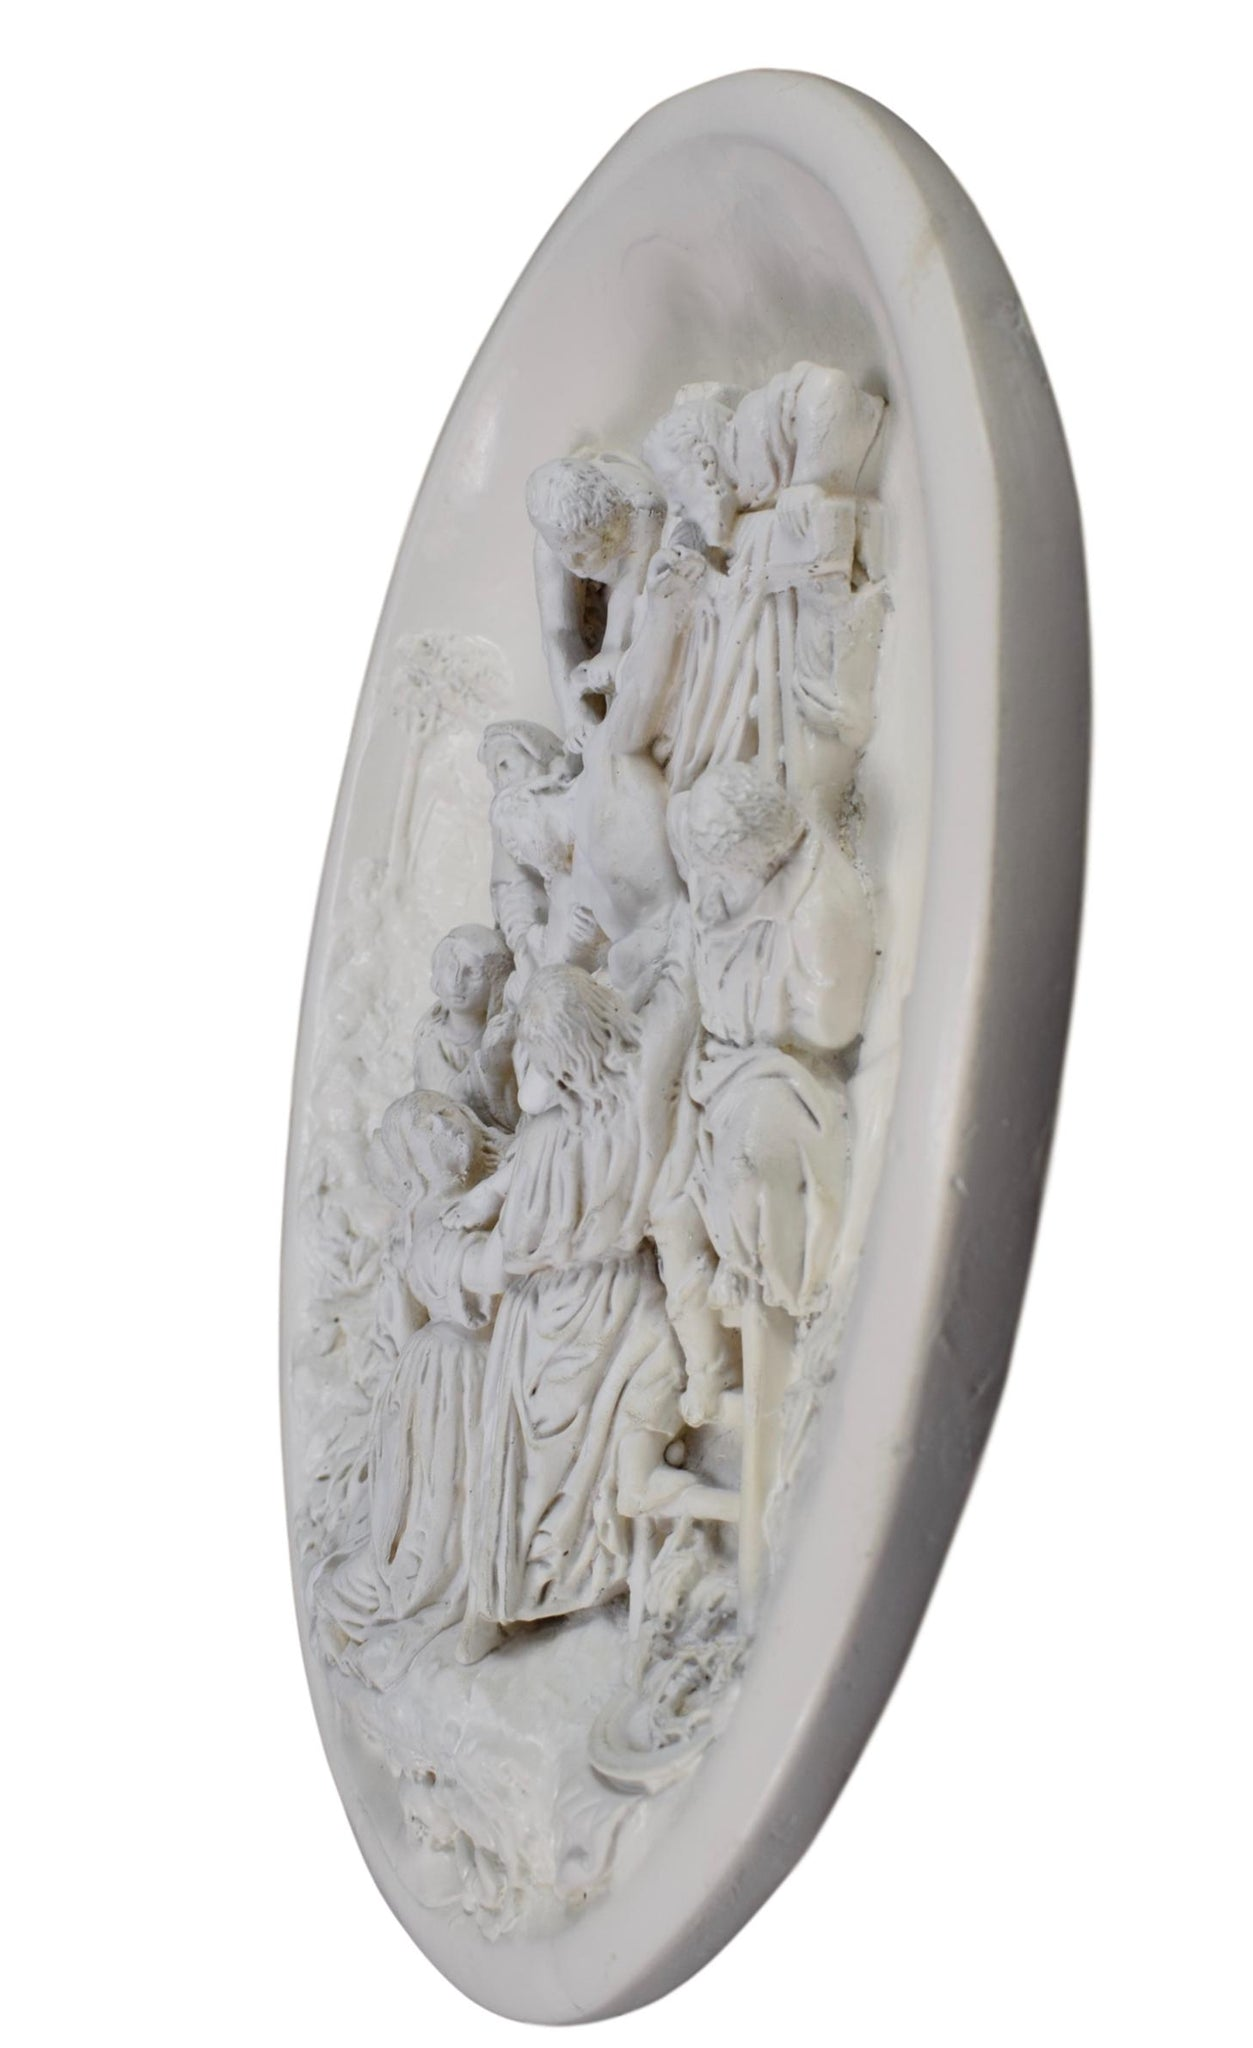 Carved Wall Plaque Meerschaum - Charmantiques